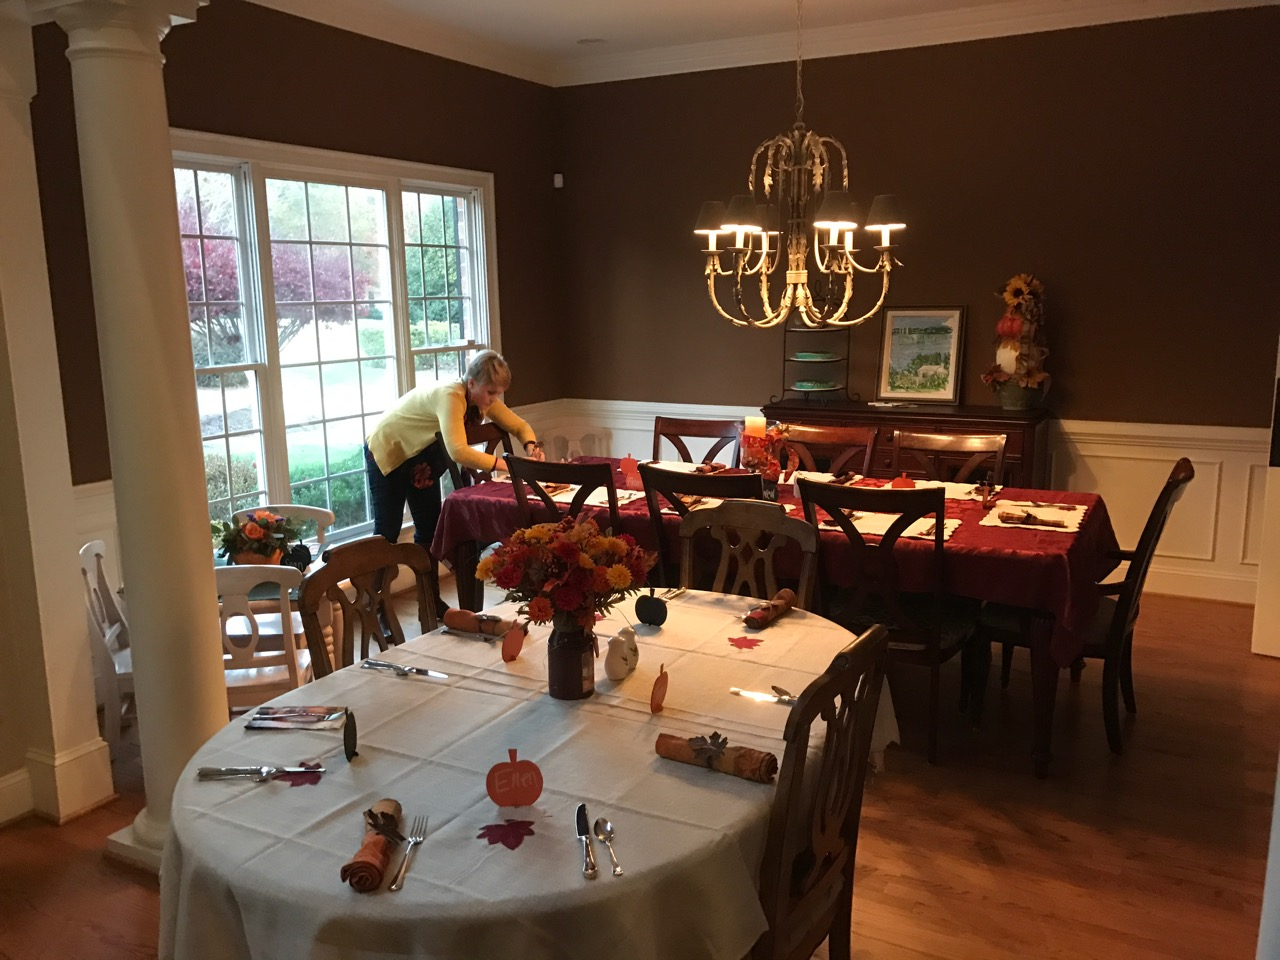 Thanksgiving table setup in Holly Springs, NC